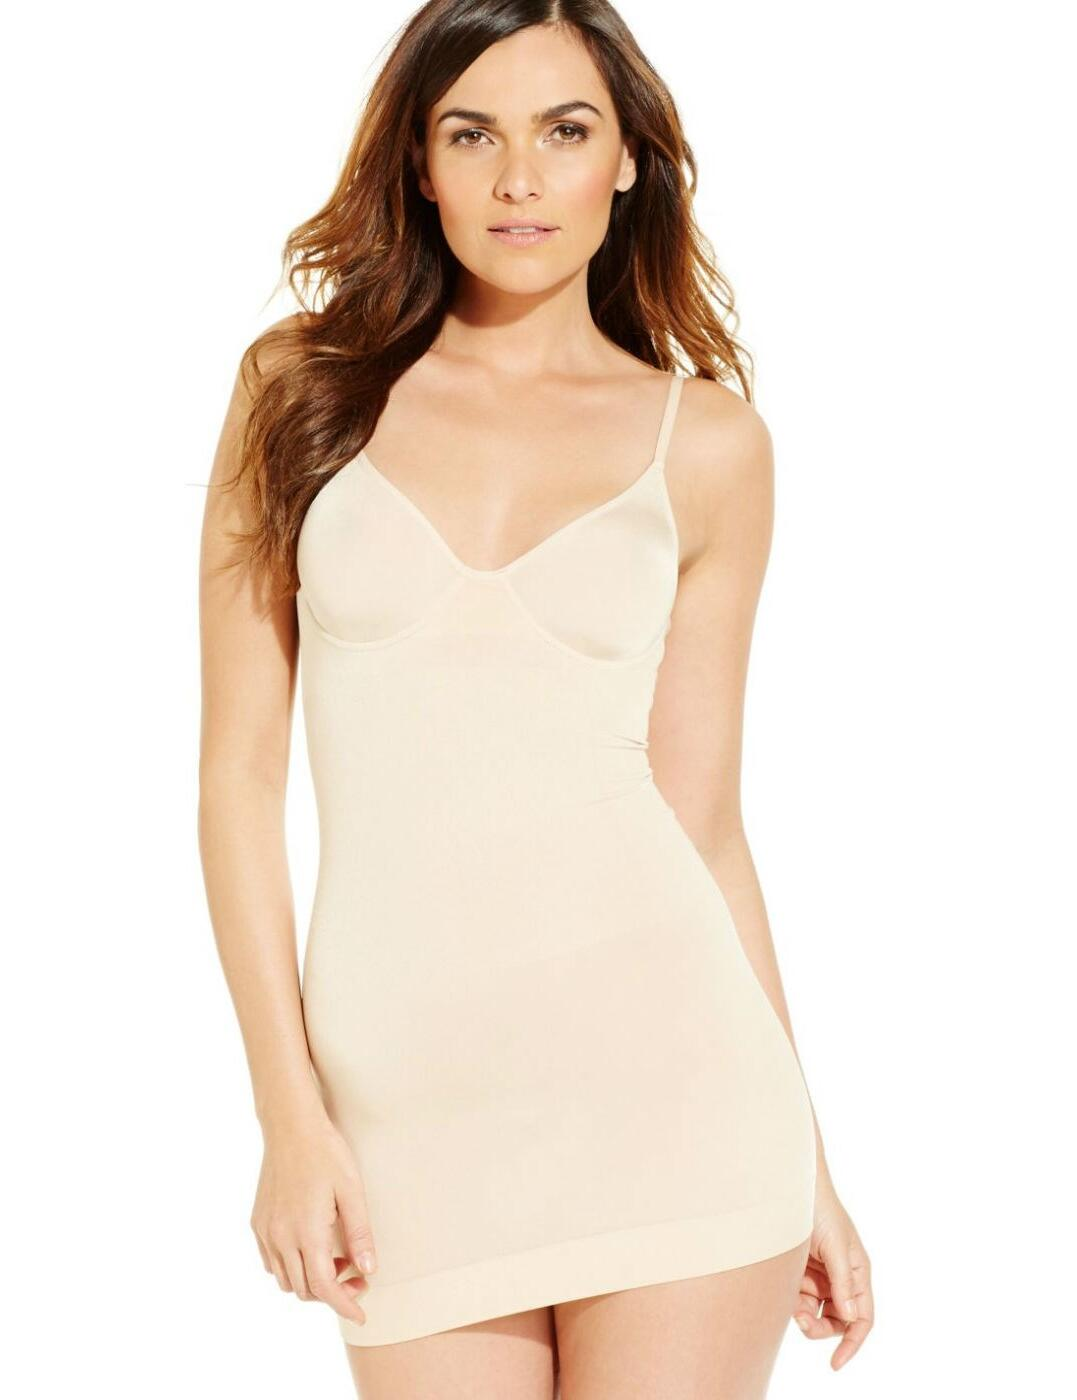 837375 Wacoal B-Smooth Underwired Slip Dress - 837375 Nude